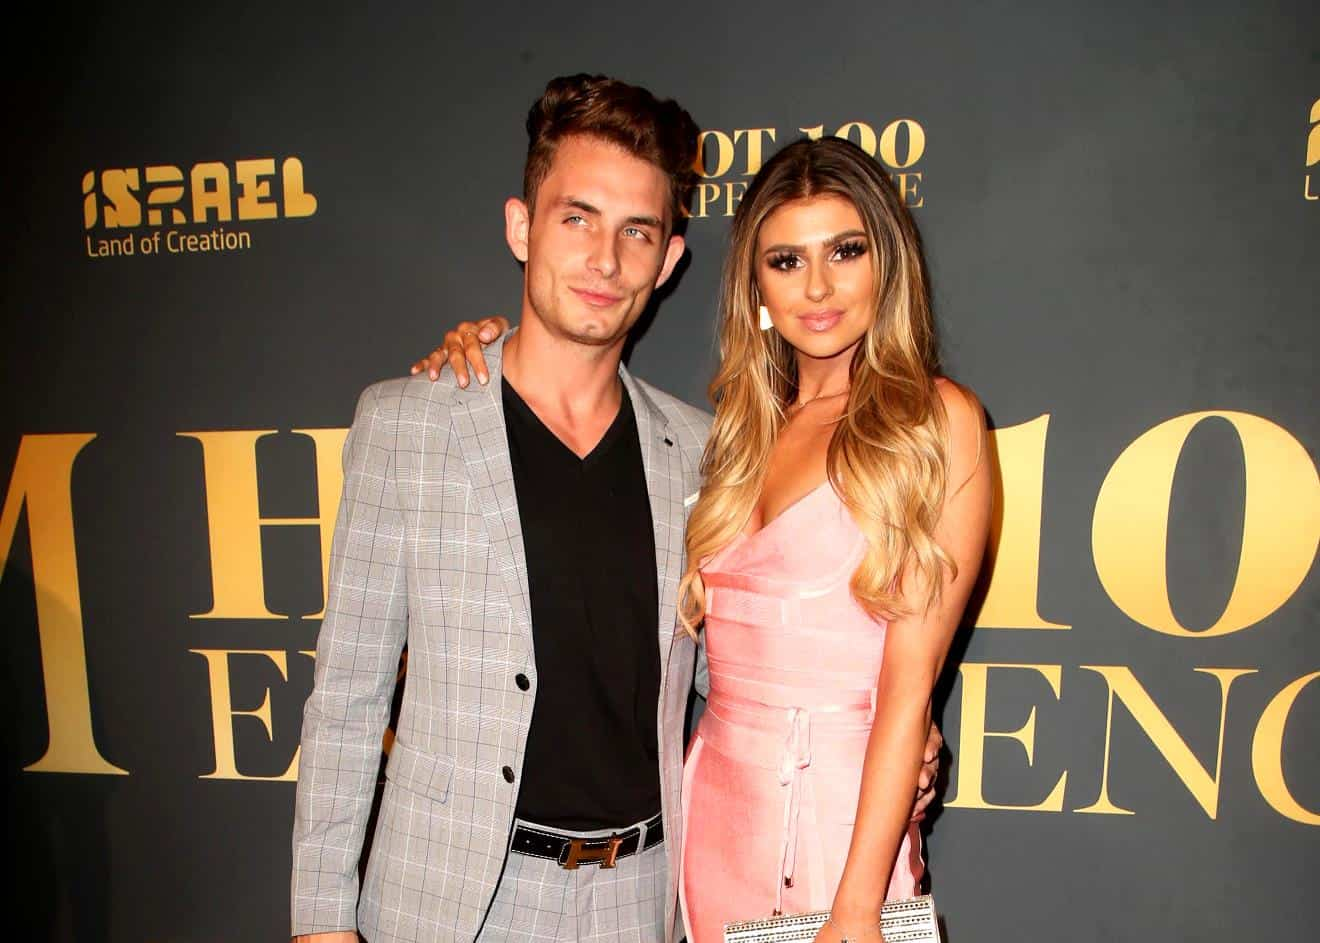 Vanderpump Rules Raquel Leviss Responds To Claims She's Dating James Kennedy For Fame